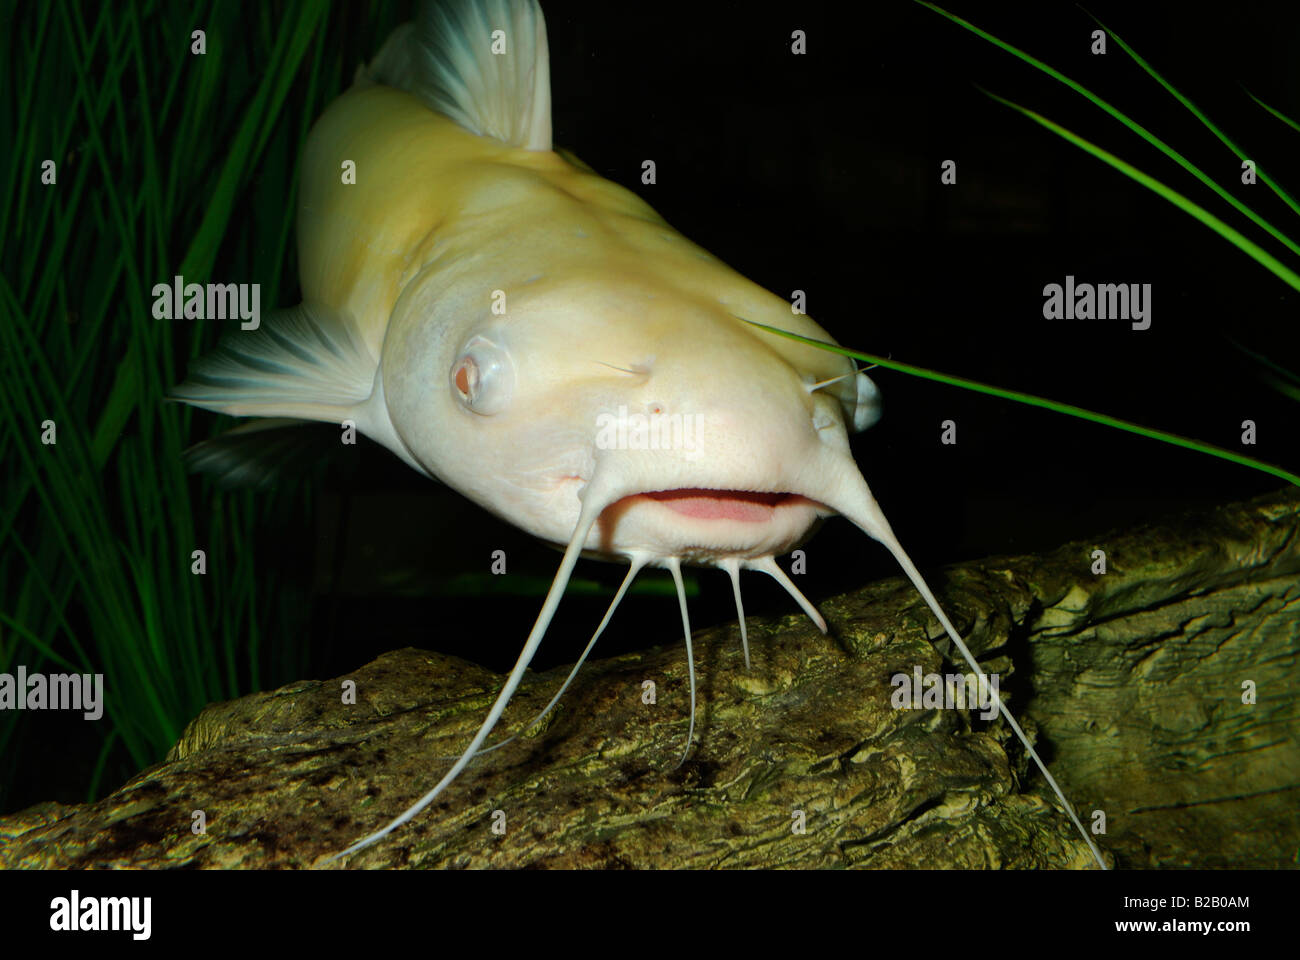 Pictures of albino channel catfish